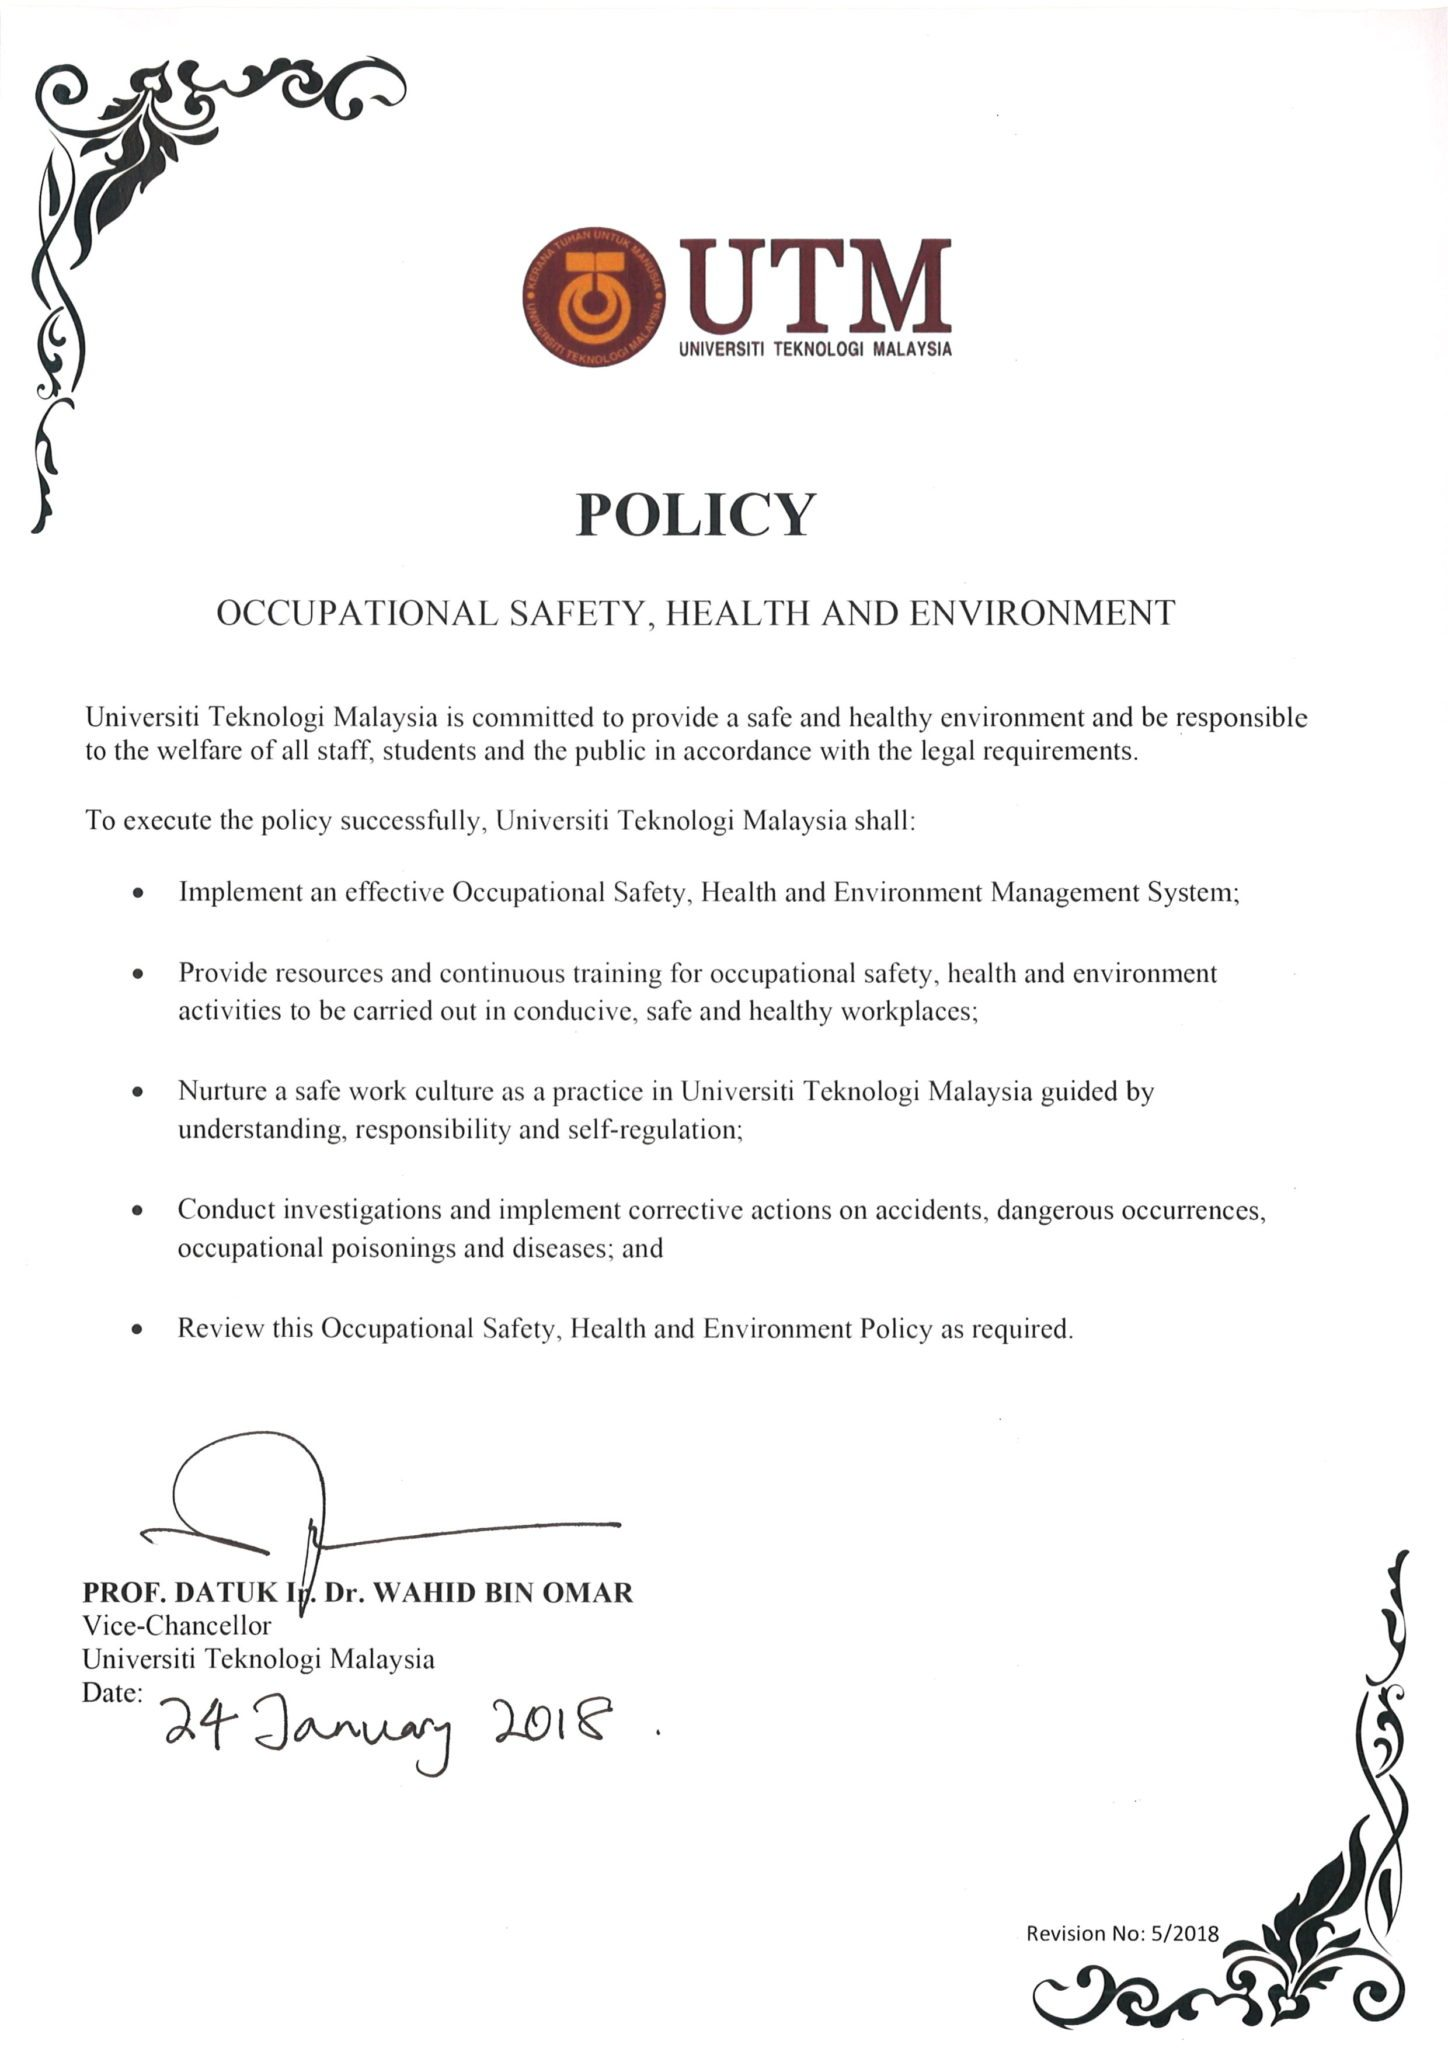 OCCUPATIONAL SAFETY, HEALTH AND ENVIRONMENT UNIT (OSHE ...